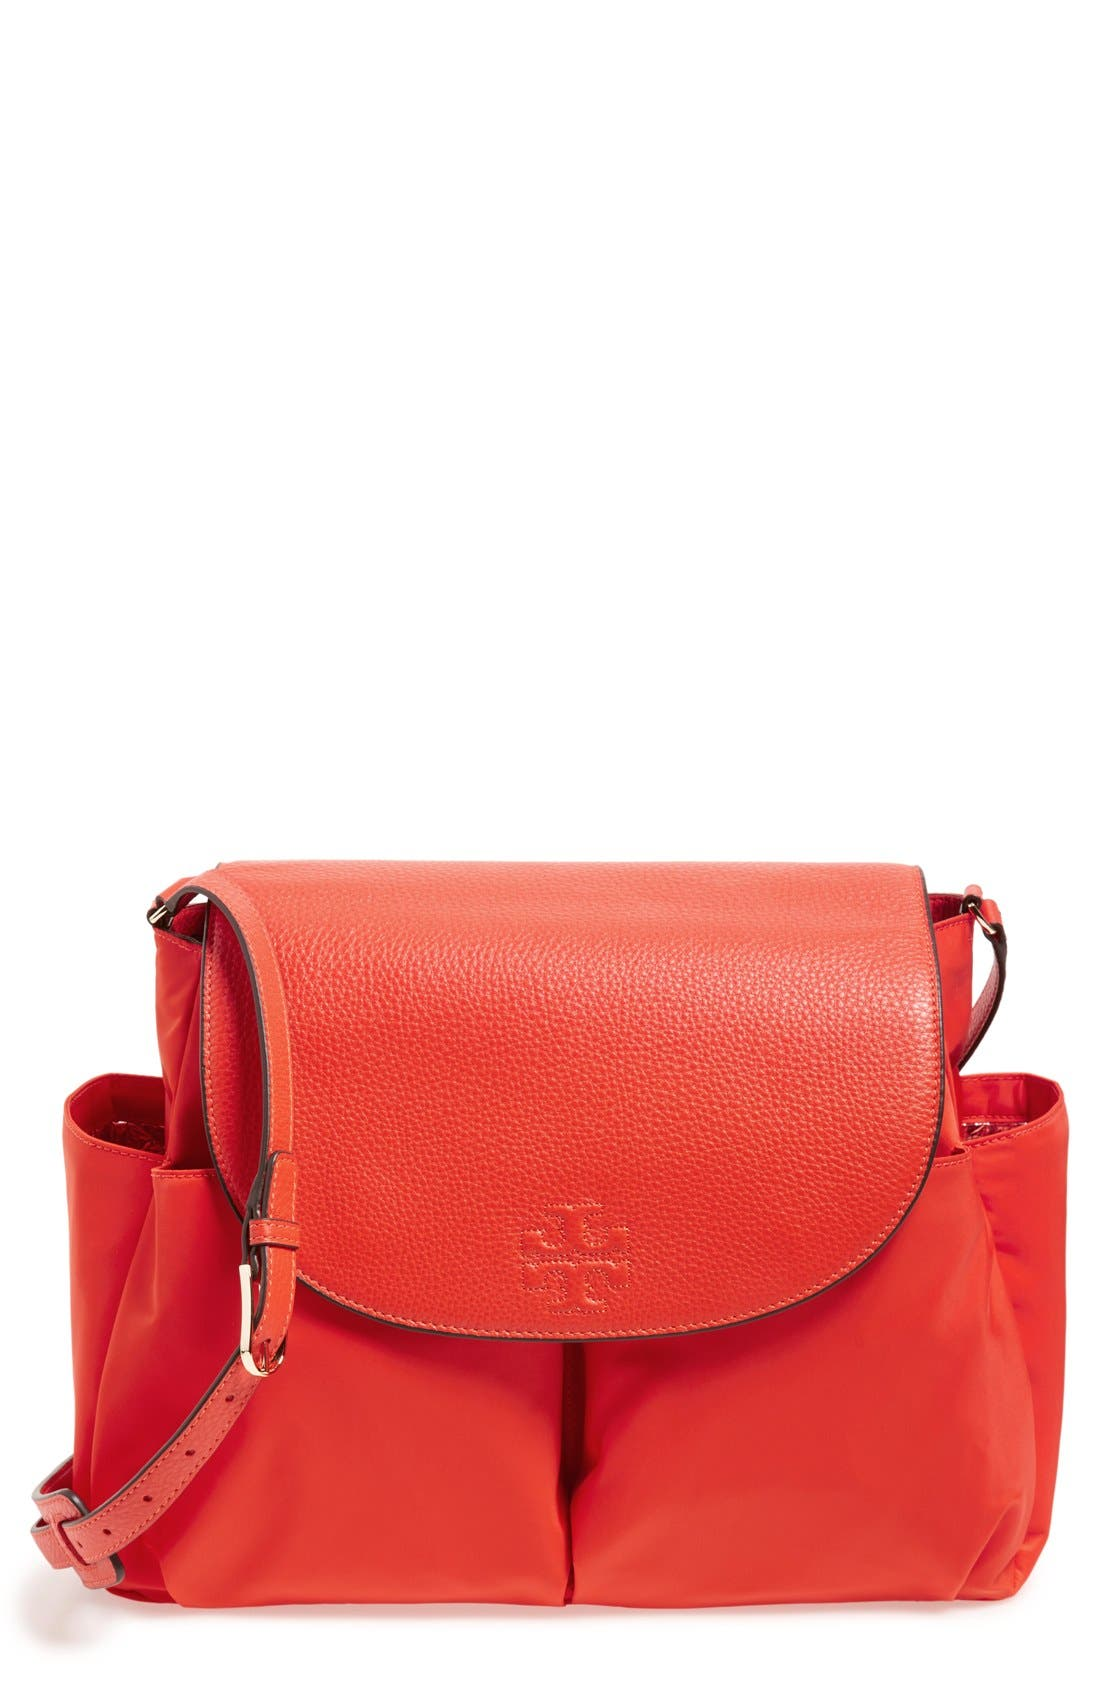 'Thea' Messenger Leather & Nylon Baby Bag,                         Main,                         color, Poppy Red